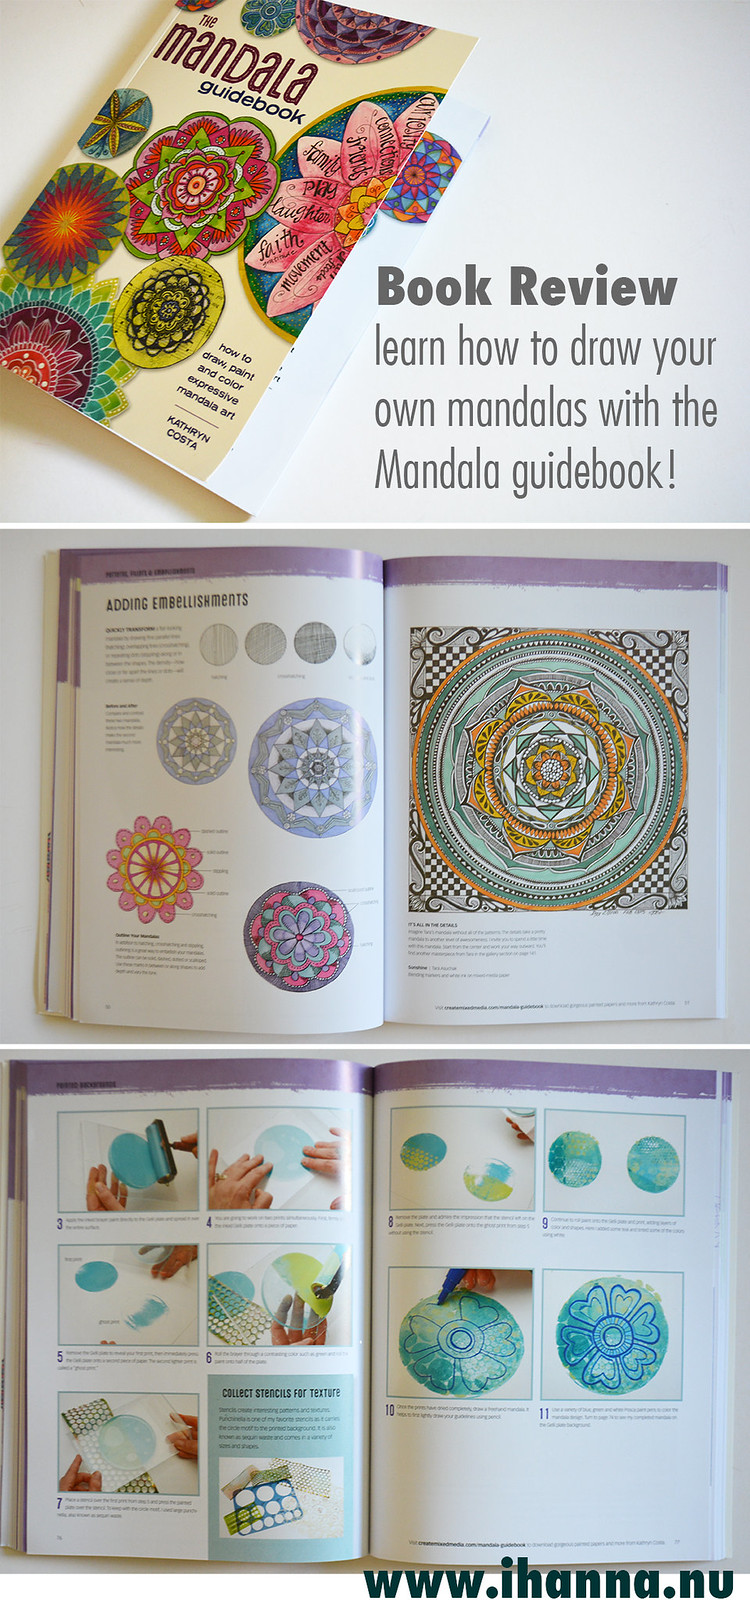 Book review of The Mandala Guidebook, more photos and the review at www.ihanna.nu by @ihanna #mandala